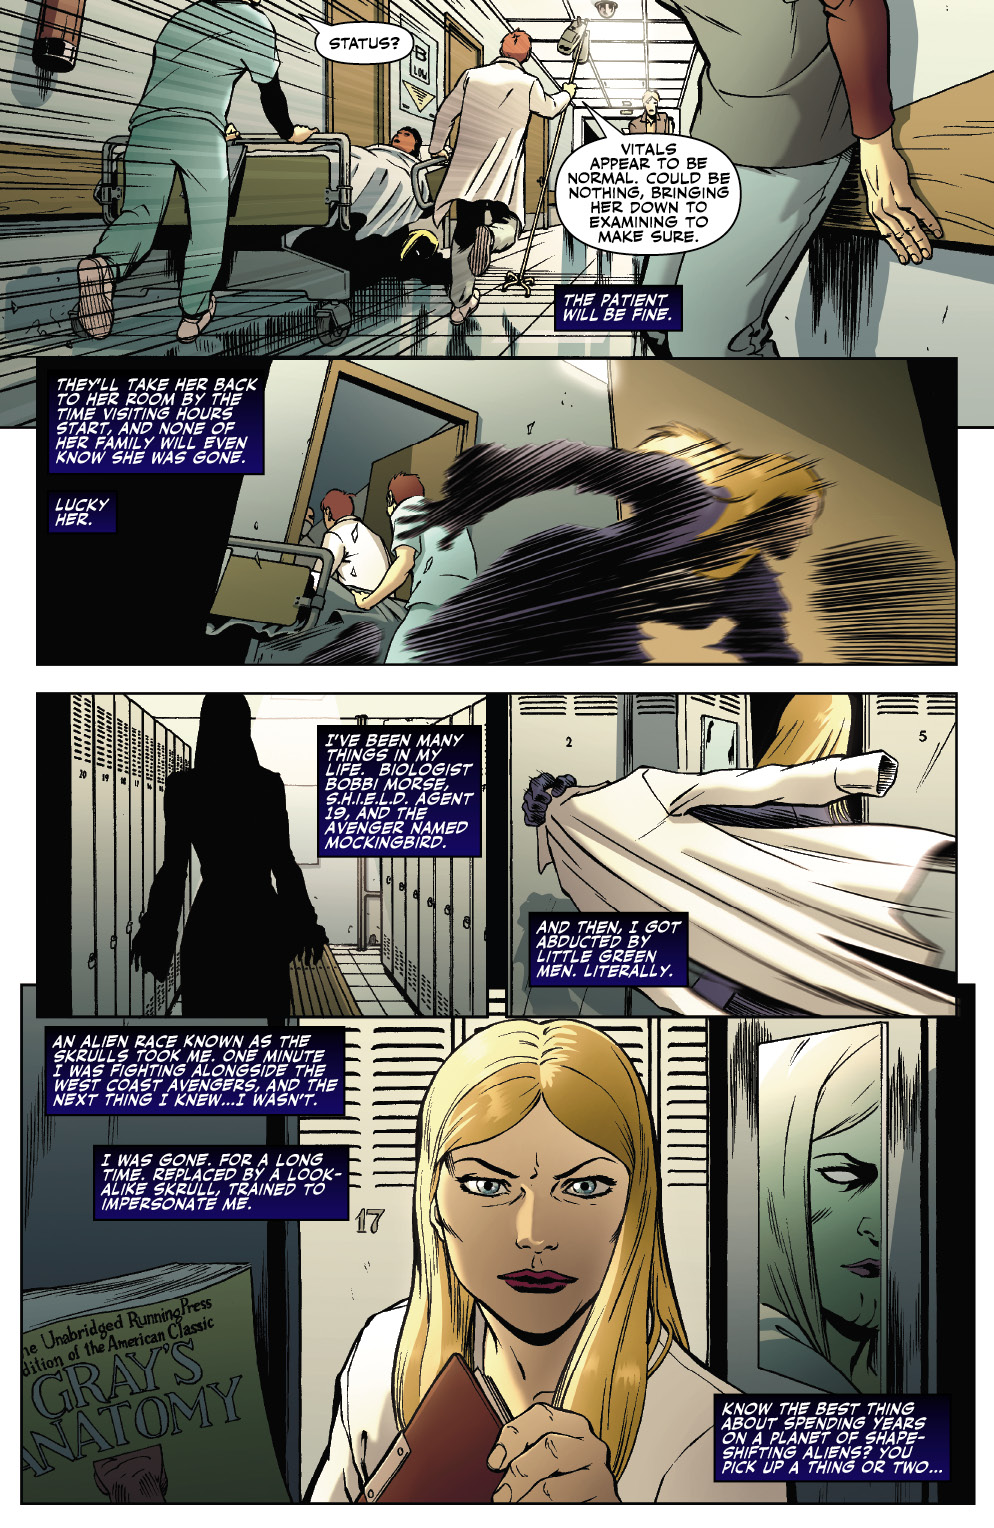 NAVNRprvw3 New Avengers The Reunion #1 Preview